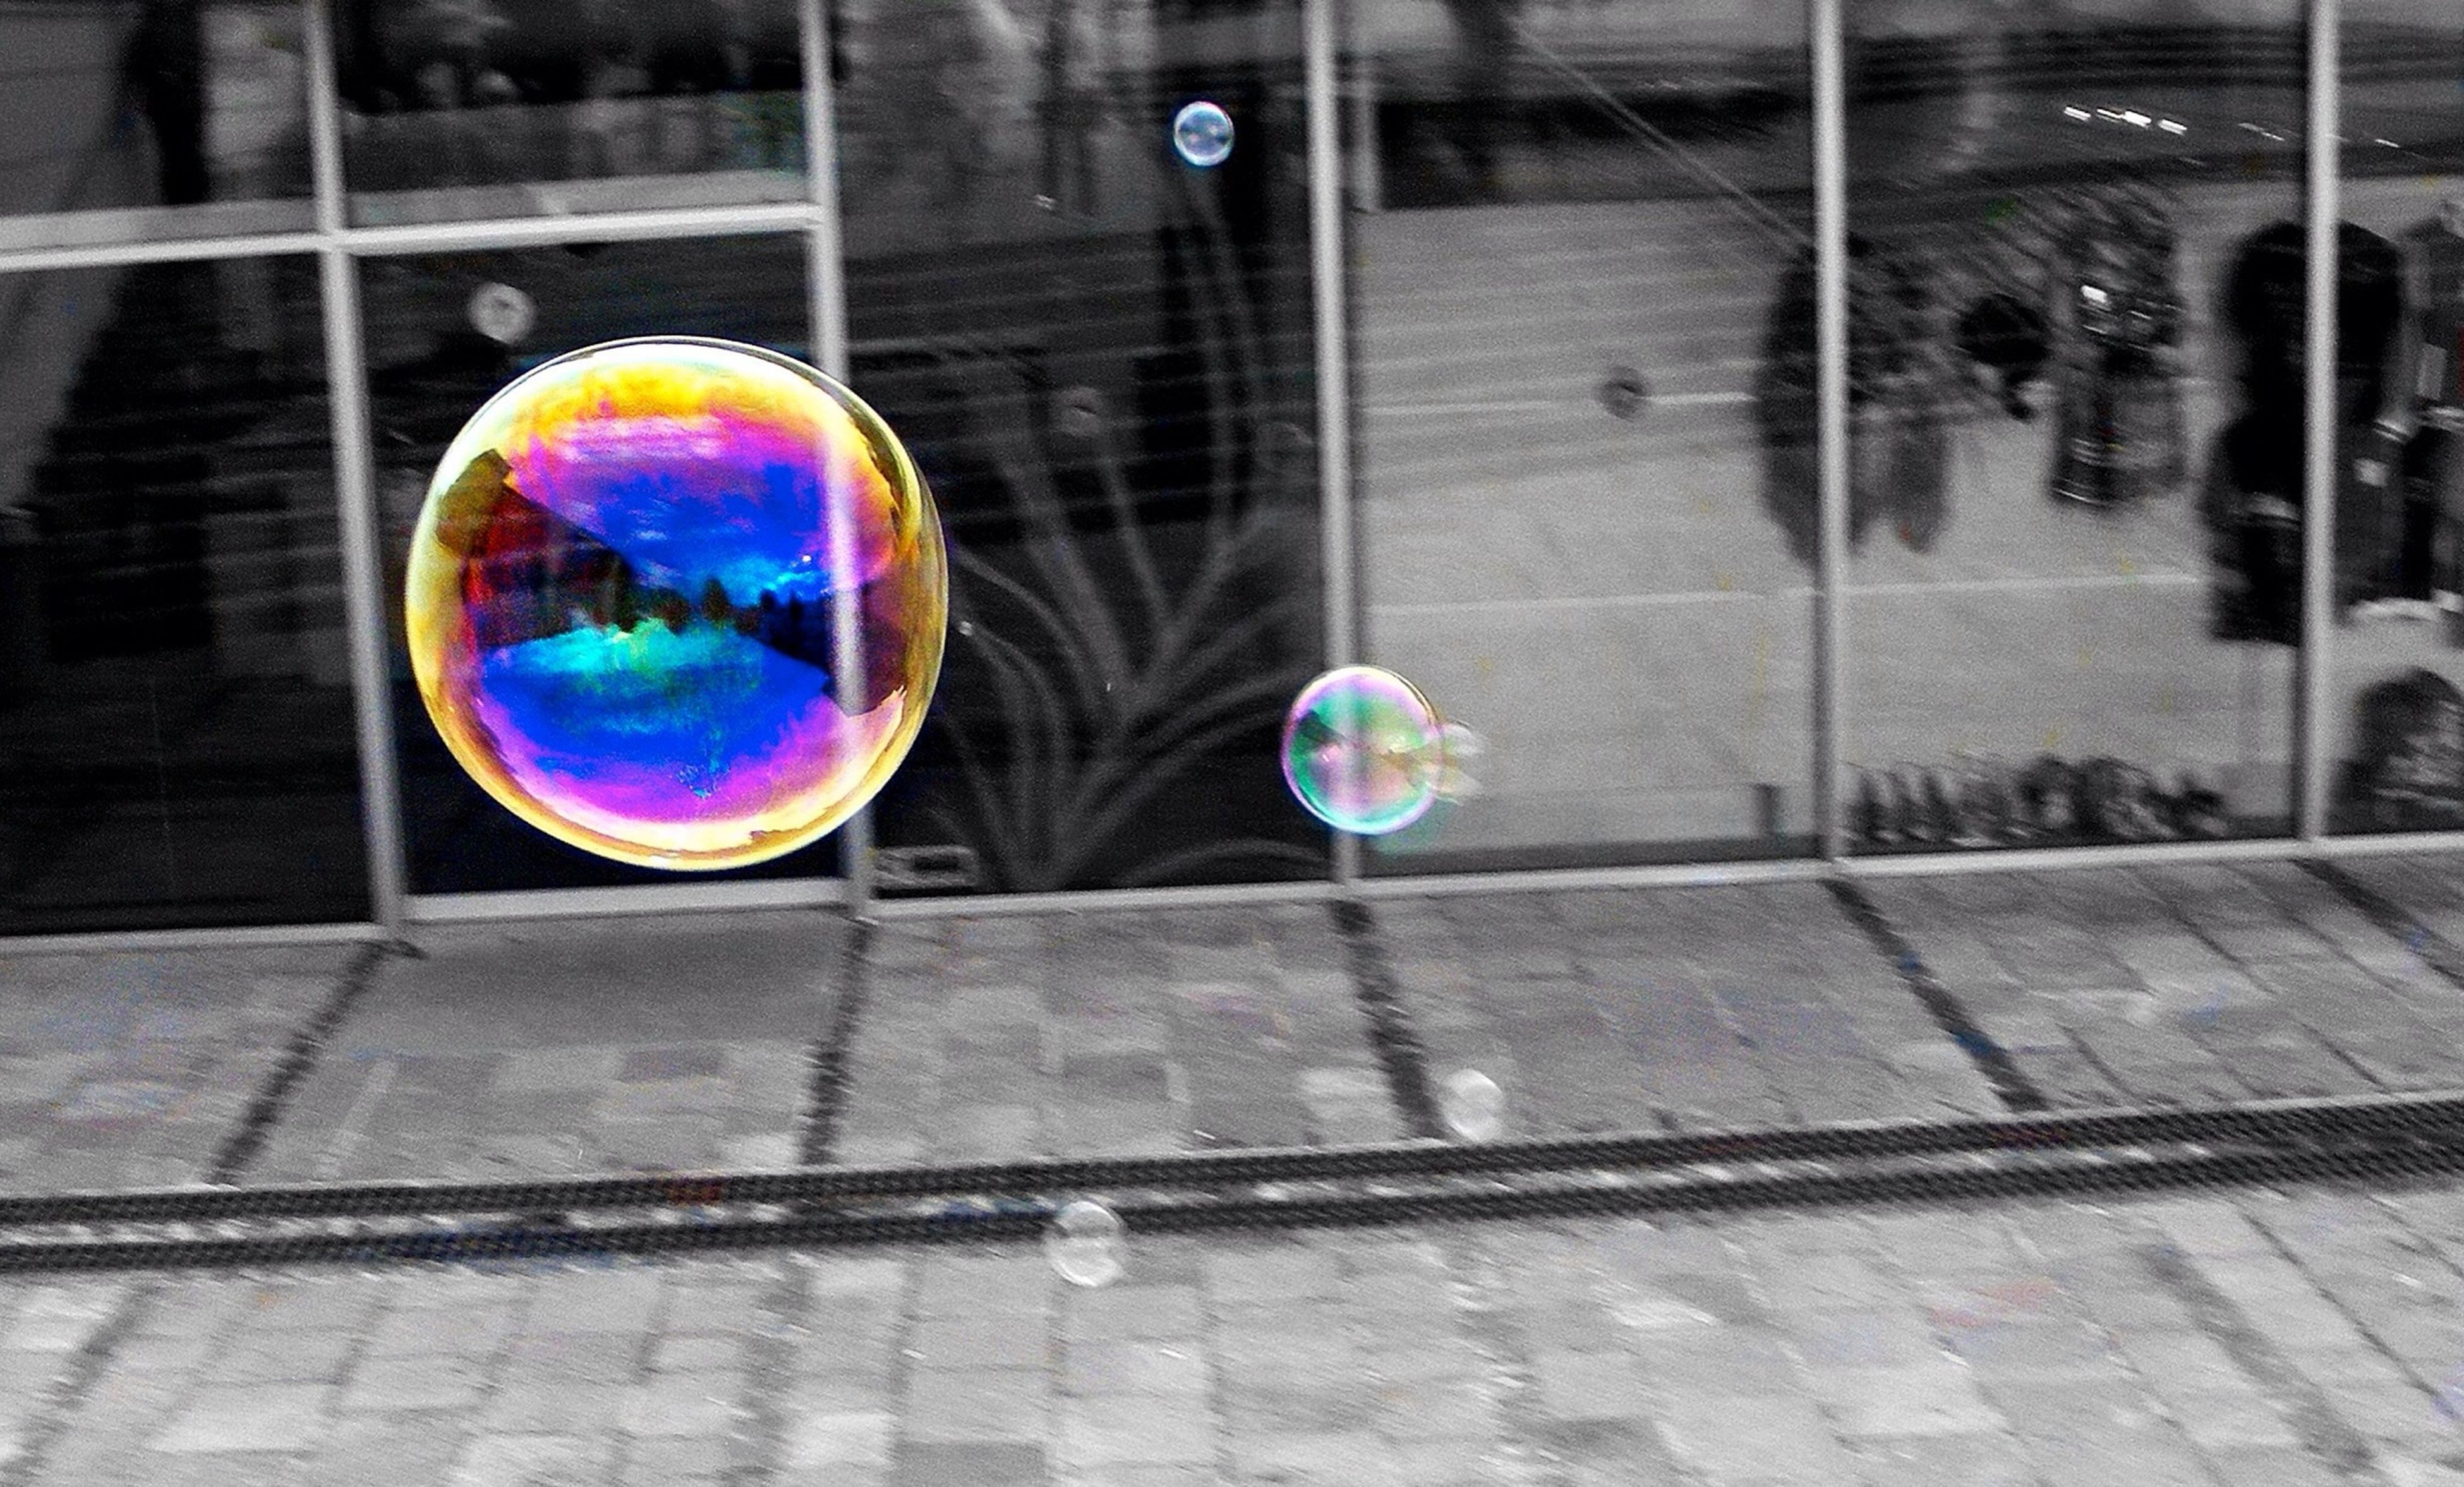 sphere, multi colored, street, mid-air, focus on foreground, transportation, ball, reflection, balloon, close-up, outdoors, road, incidental people, fragility, glass - material, circle, day, no people, motion, colorful